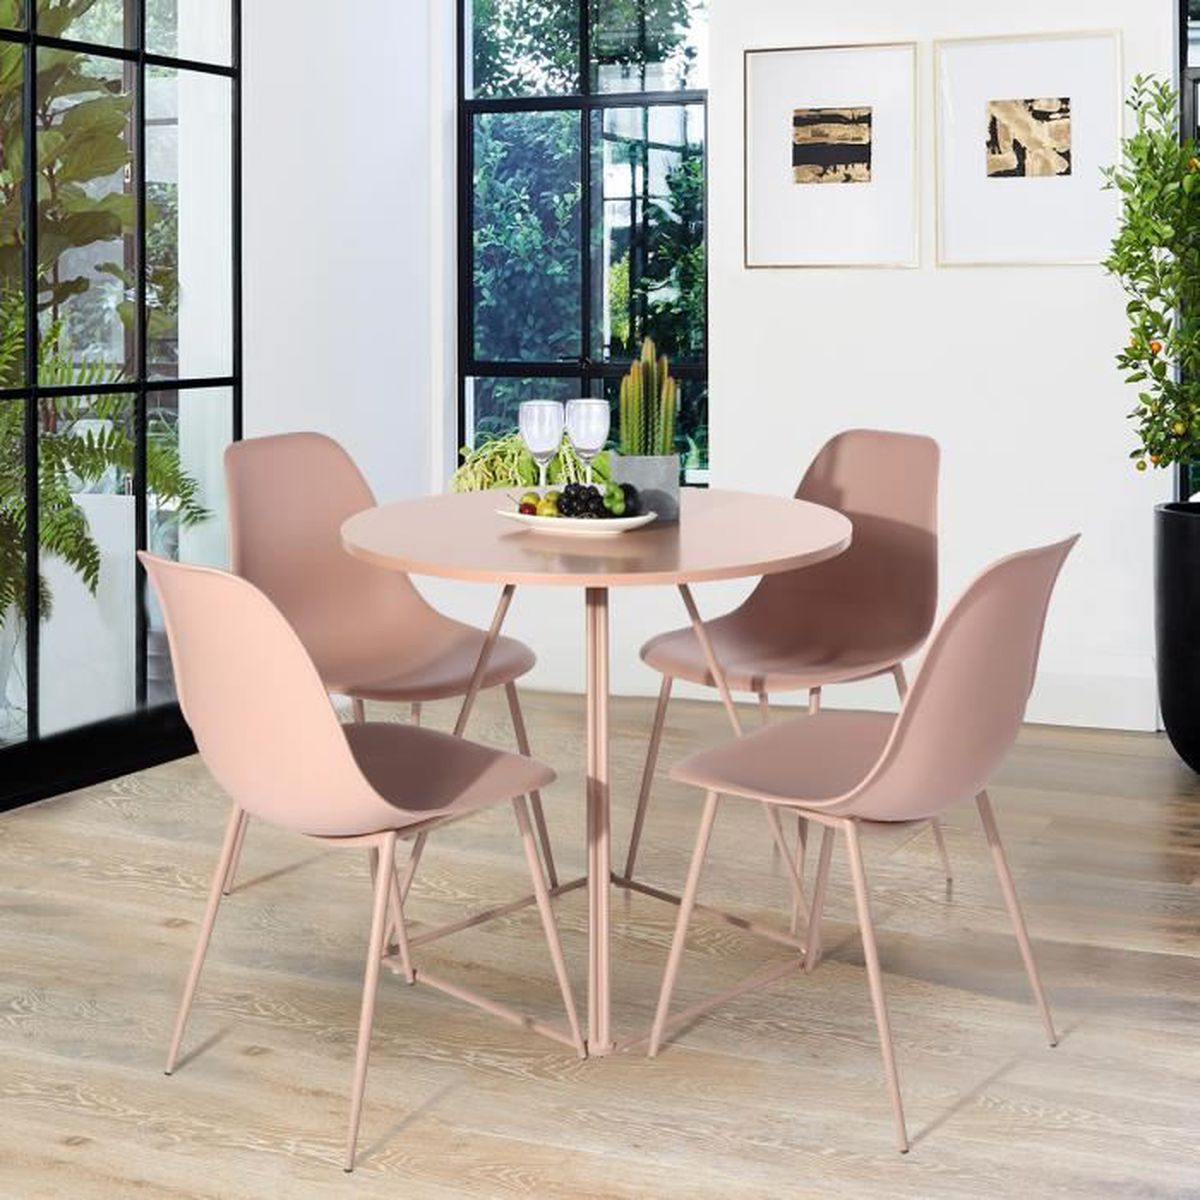 Table ronde et chaise salle a manger